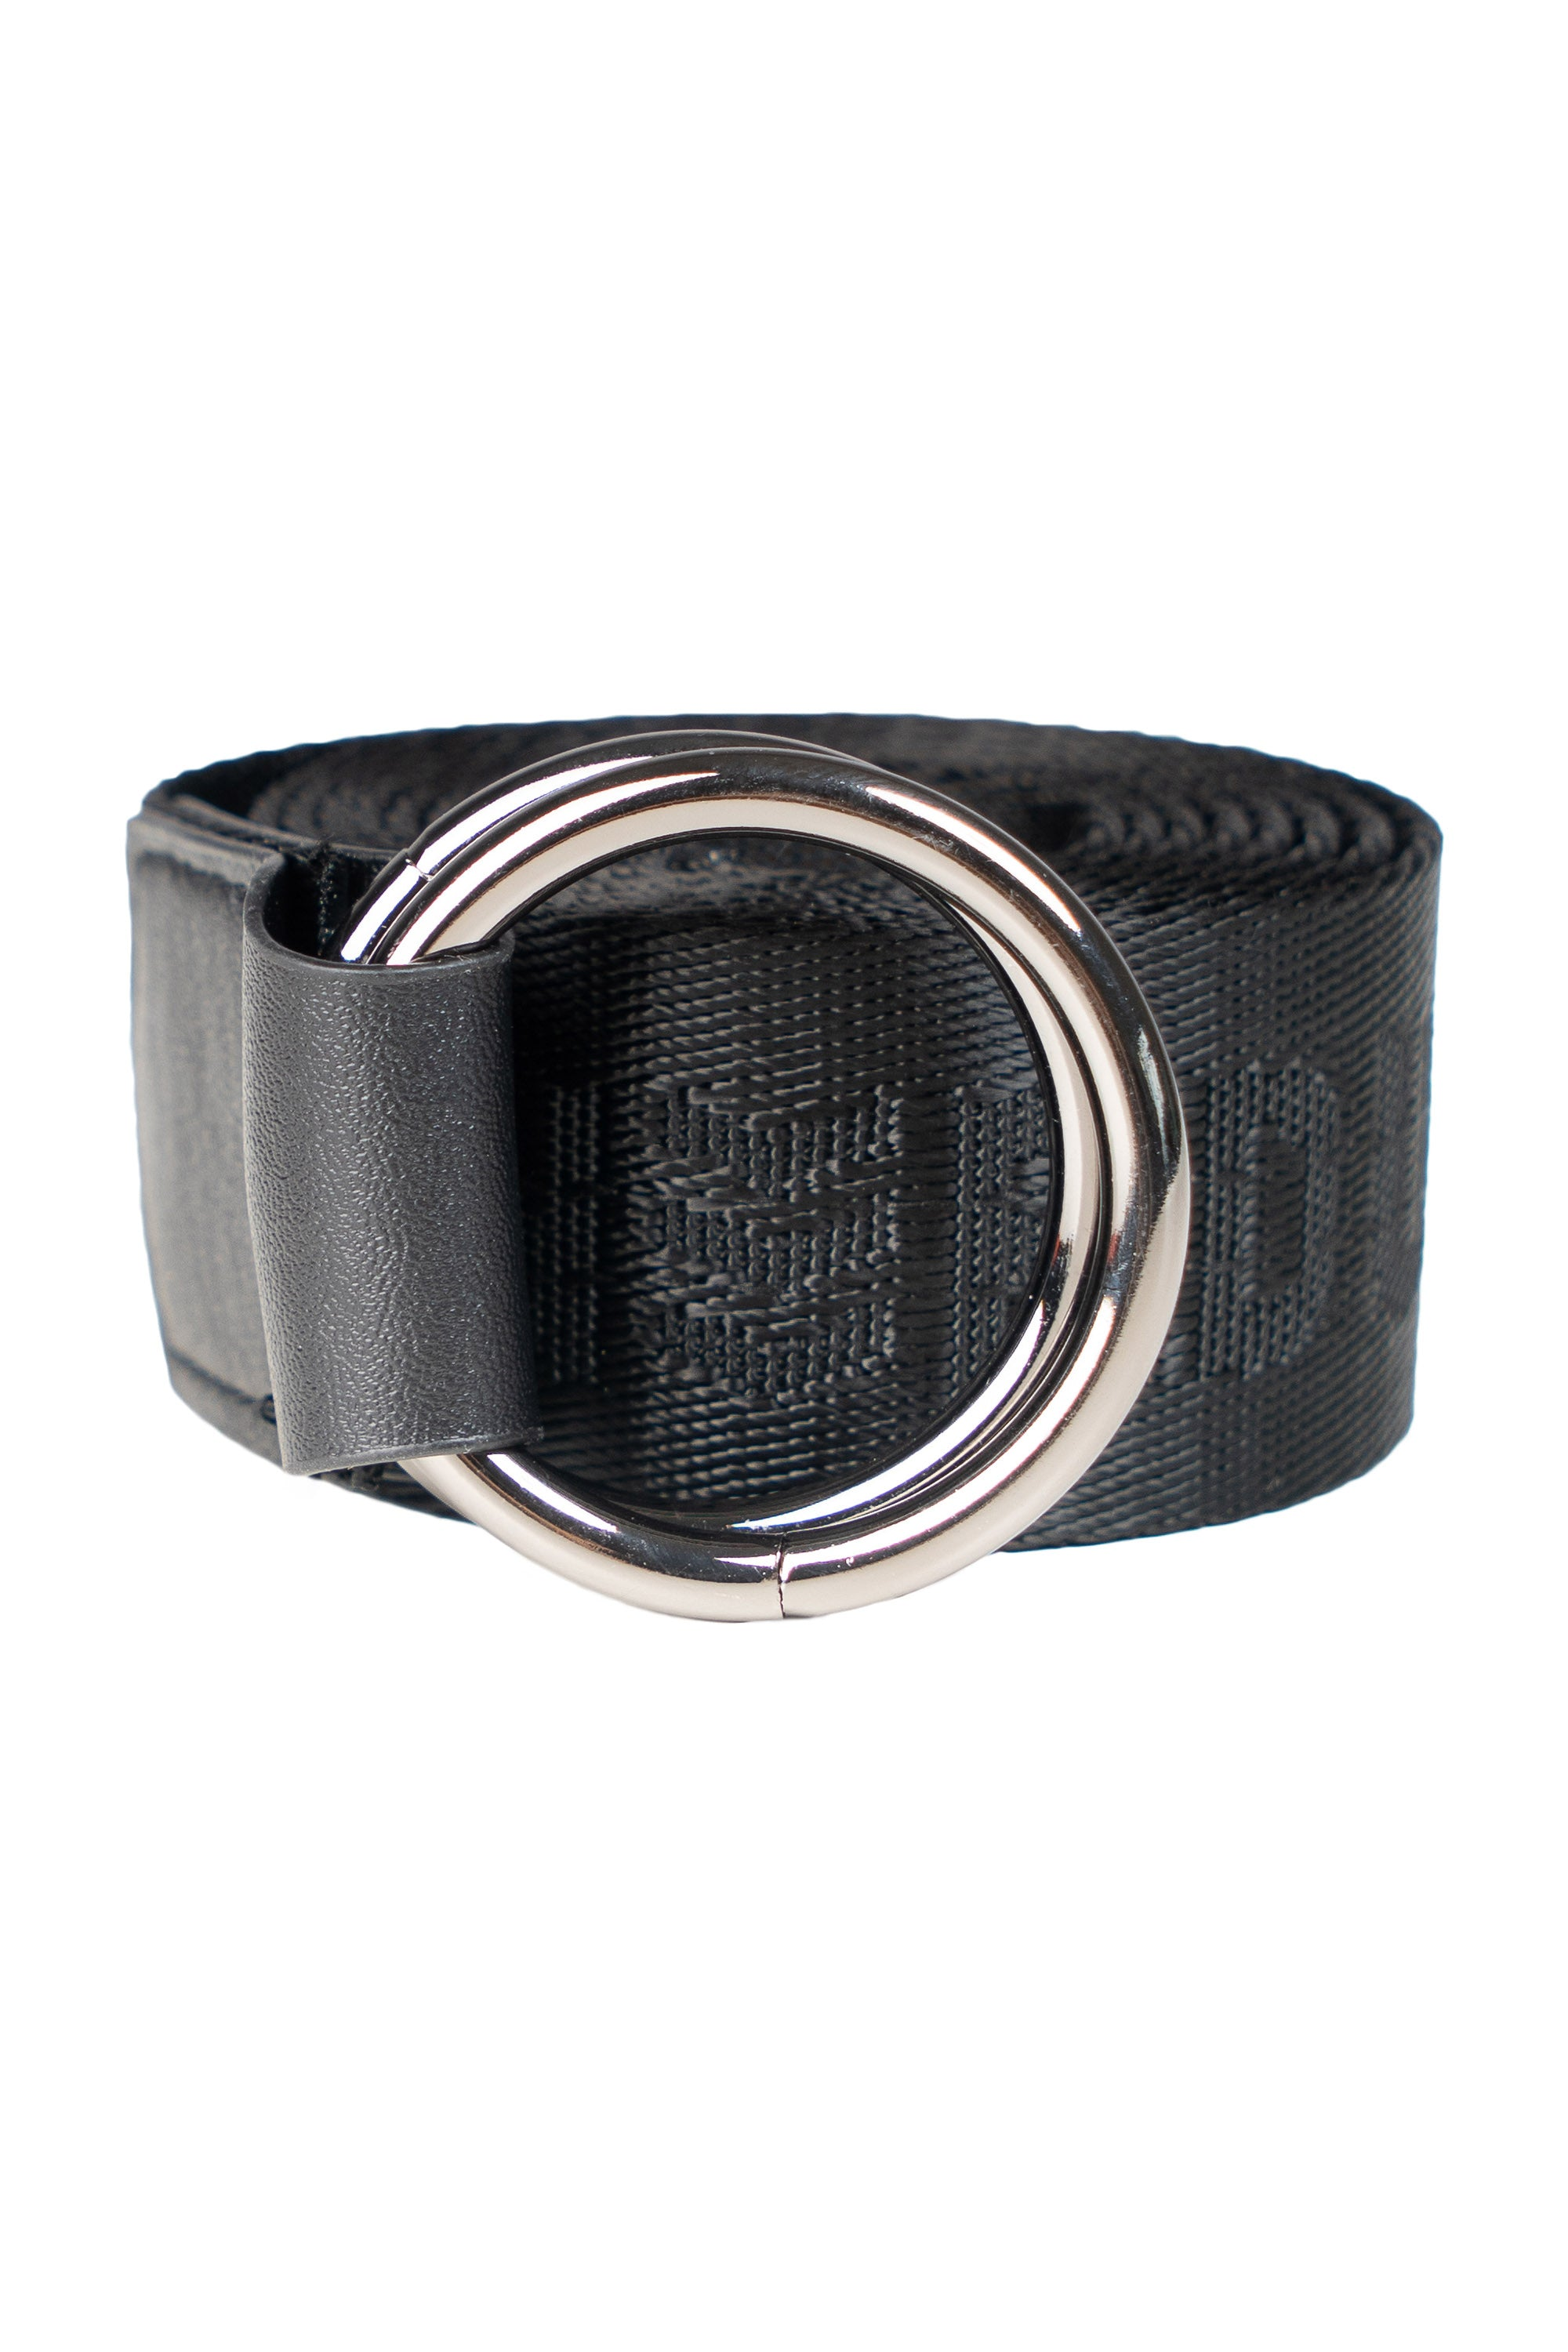 ALL BLACK STRAP BELT